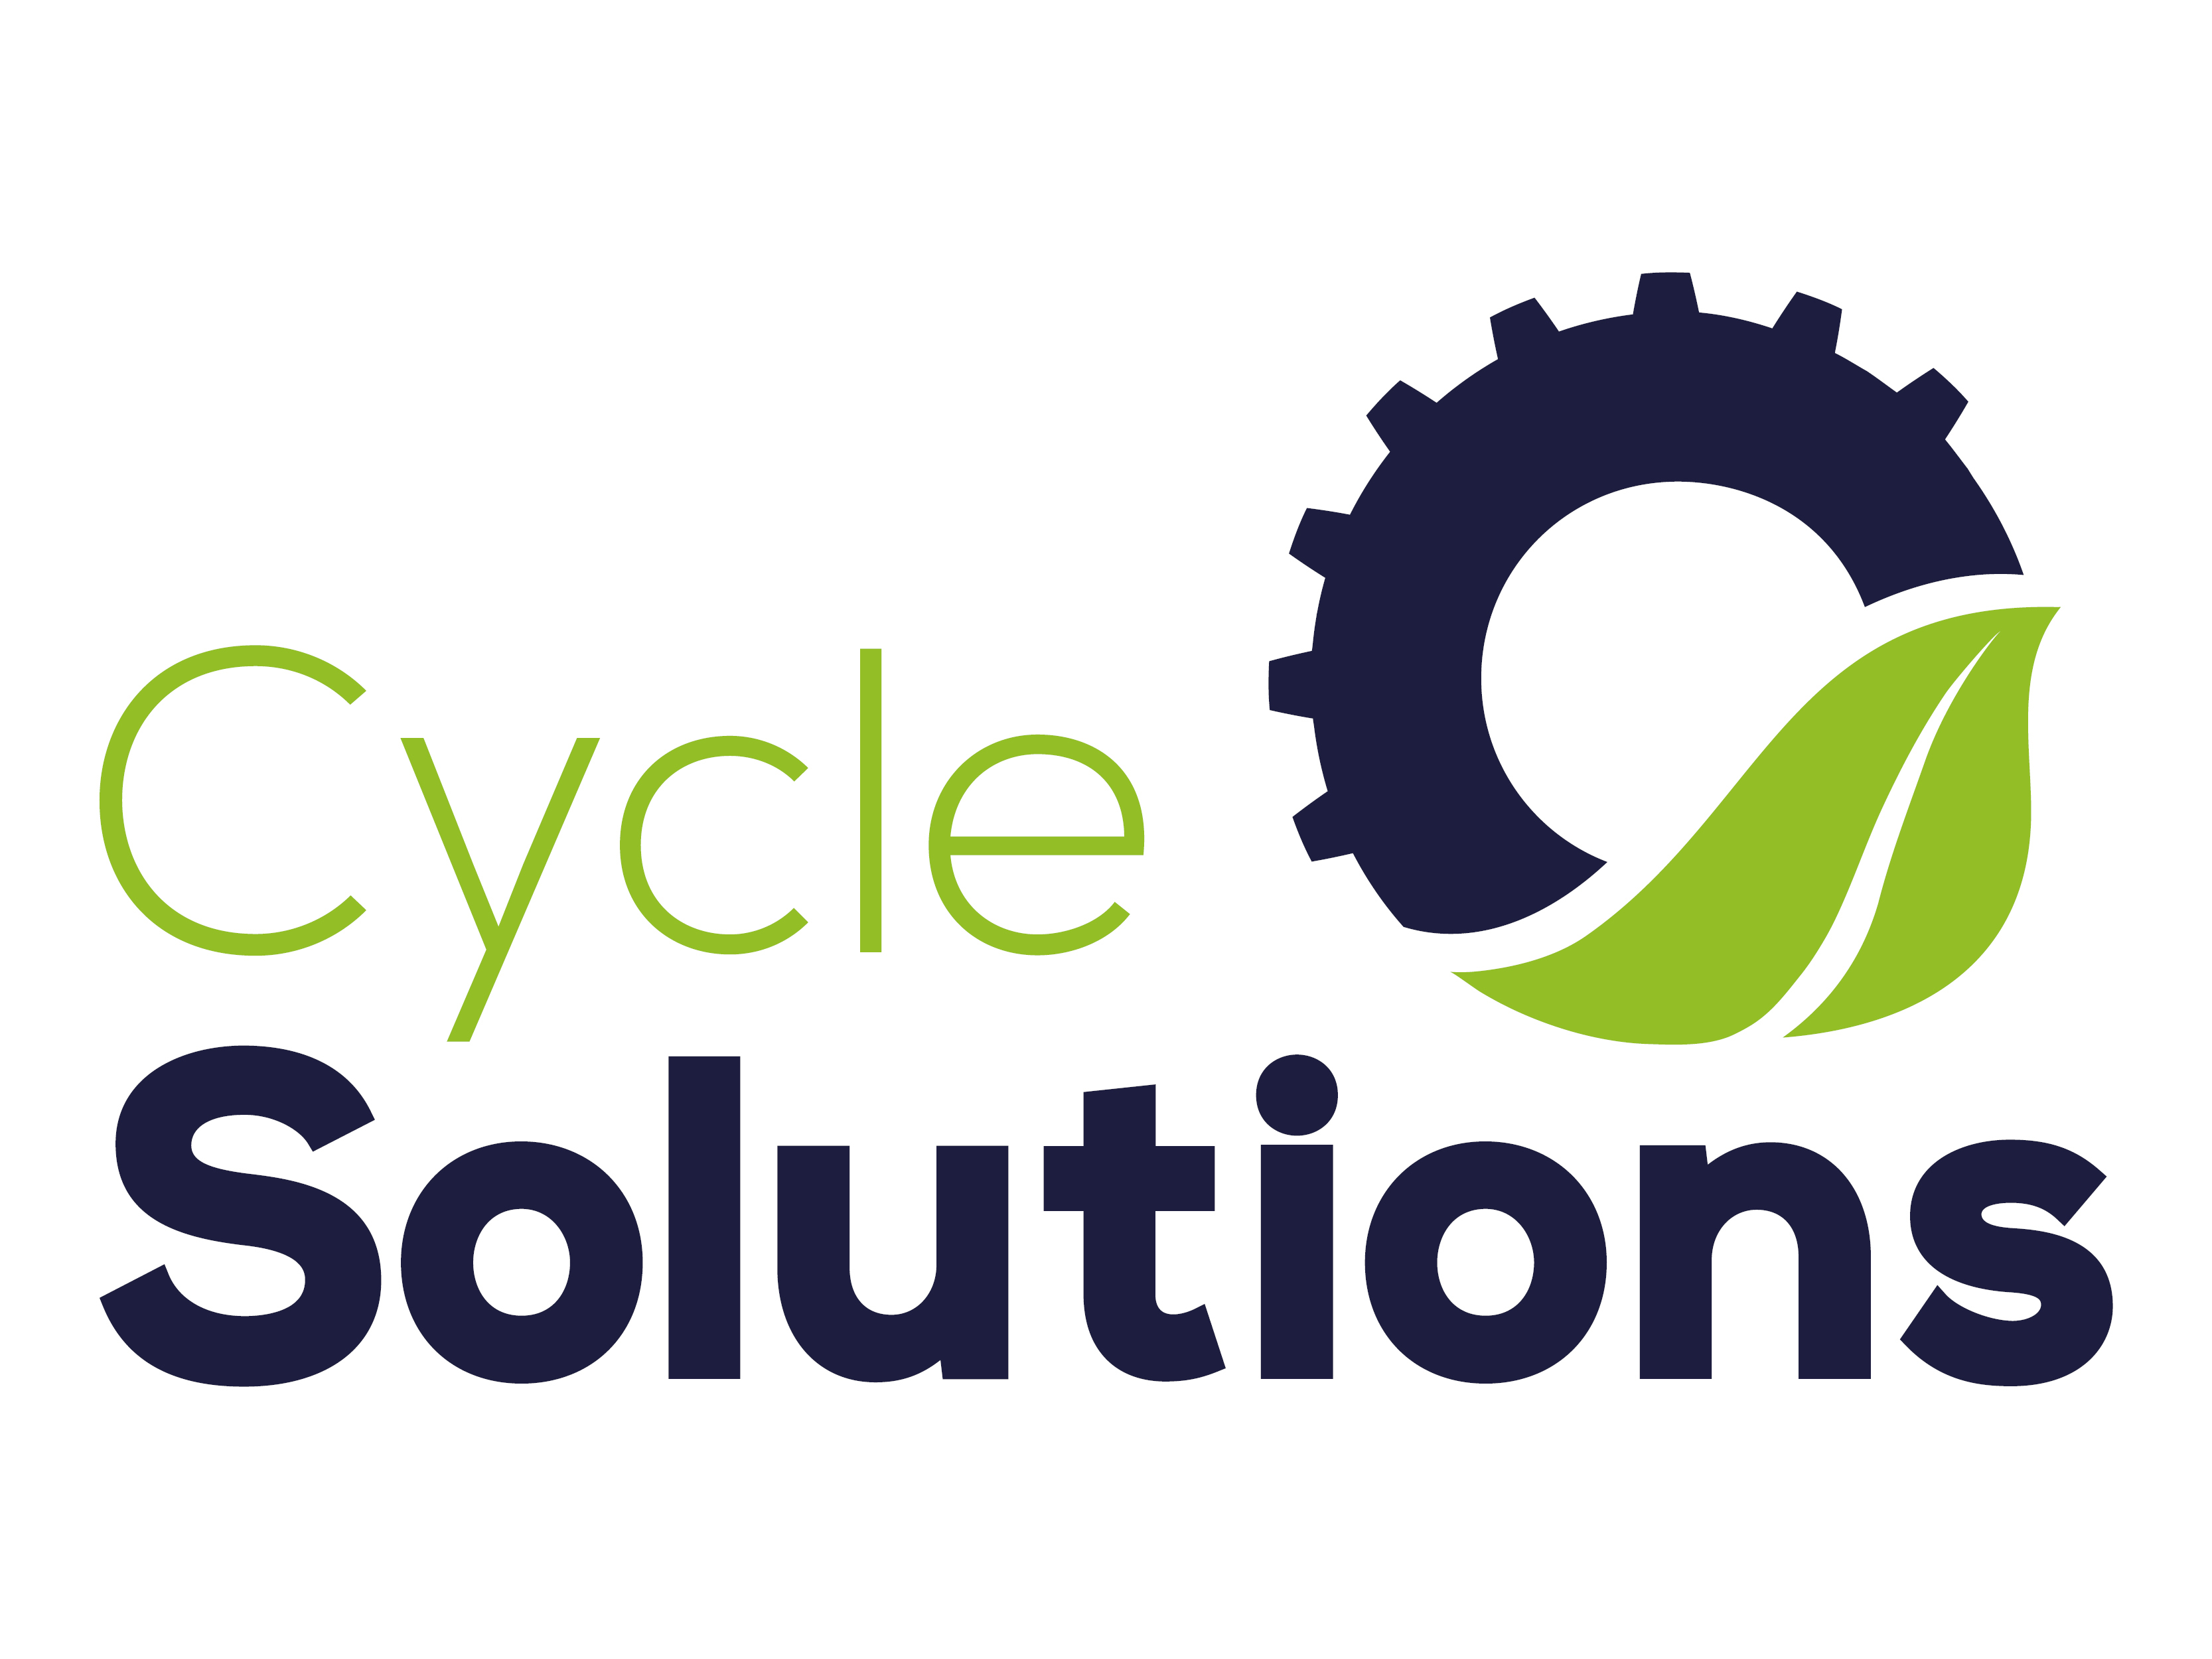 Cycle Solutions Ltd